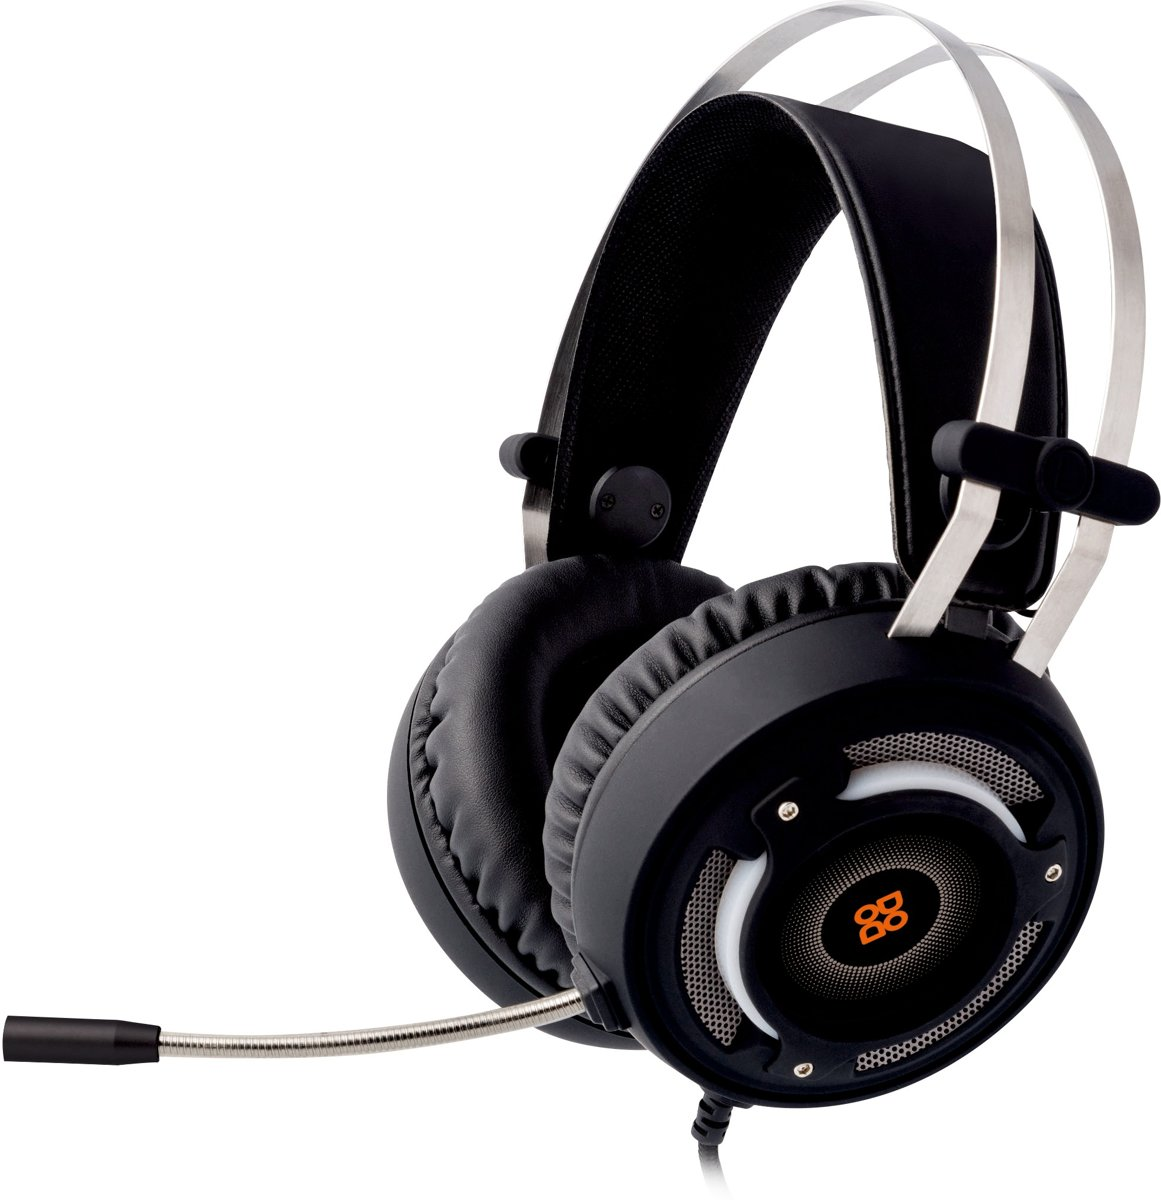 Afbeelding van Overear  Gaming Headset Dutch Originals - voor PC